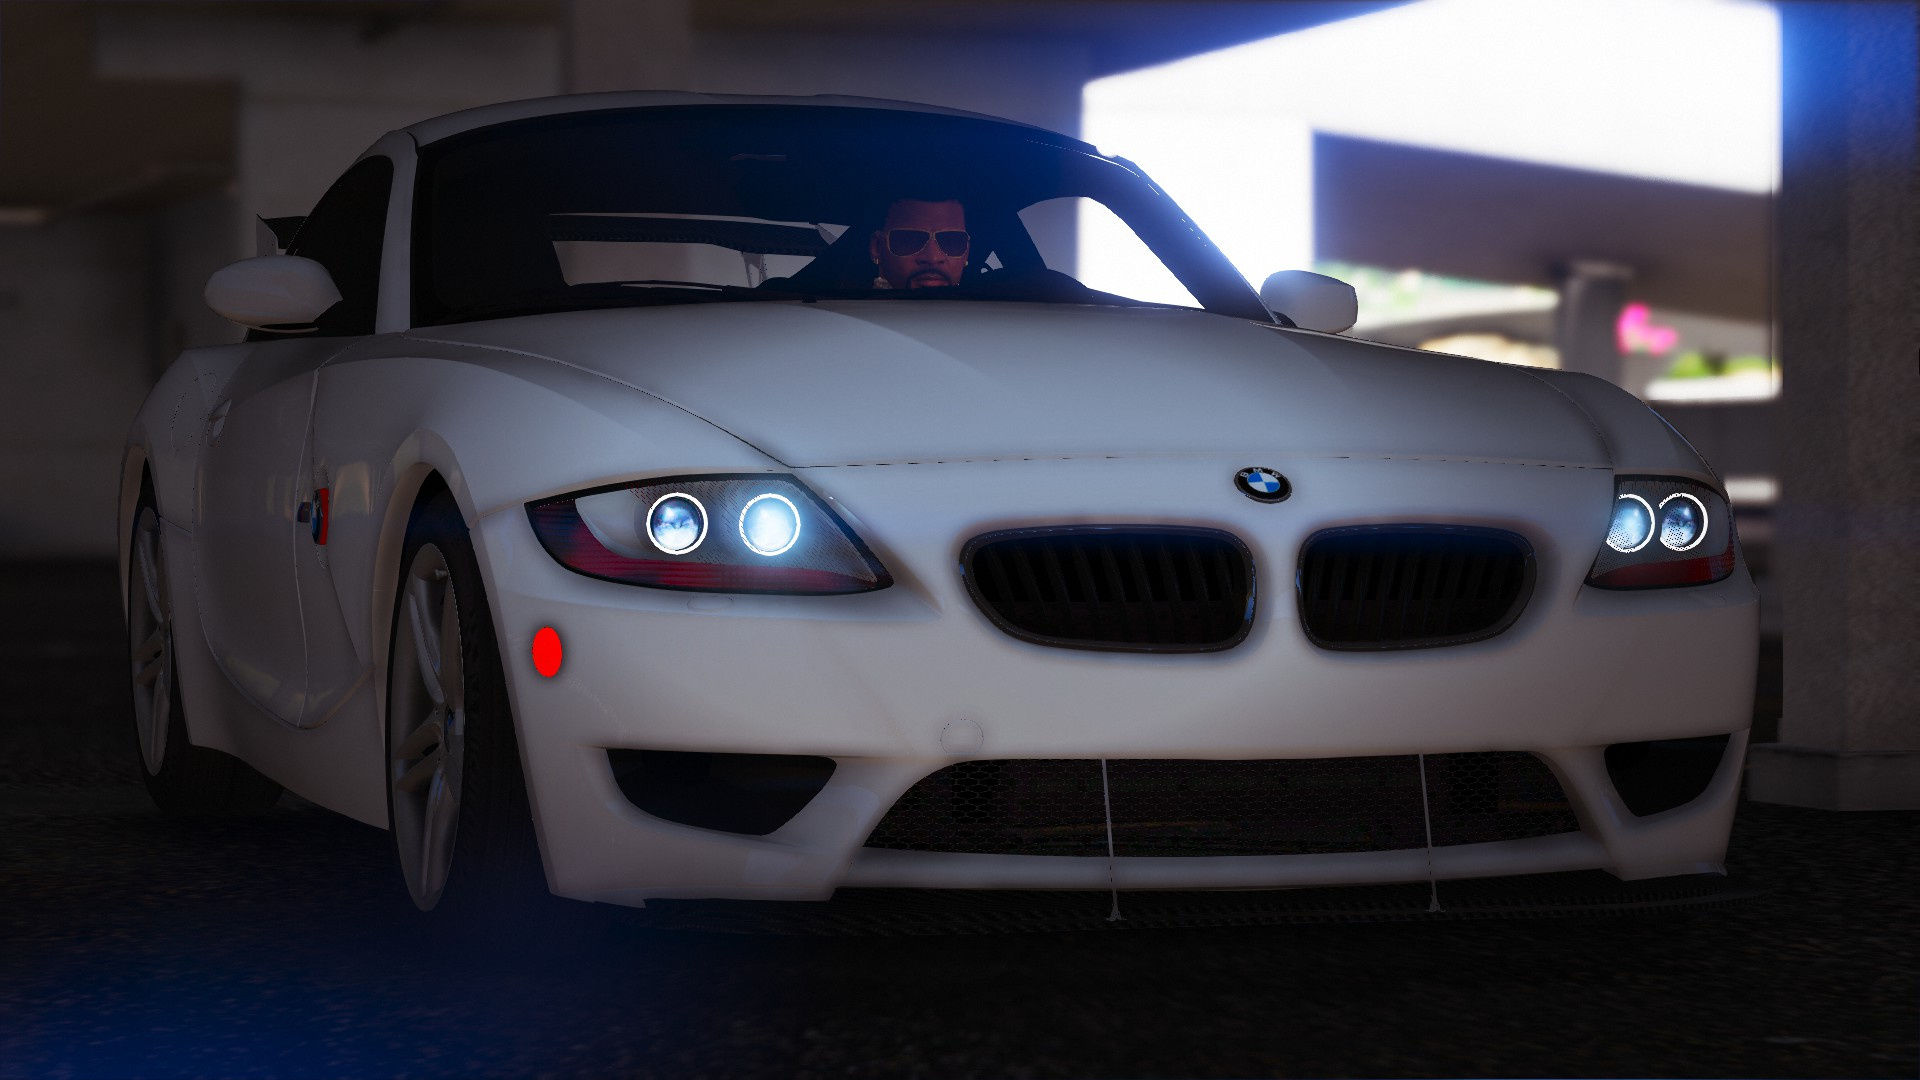 2008 BMW Z4M (E86) Coupe [Tuning | HQ Engine] - GTA5-Mods.com